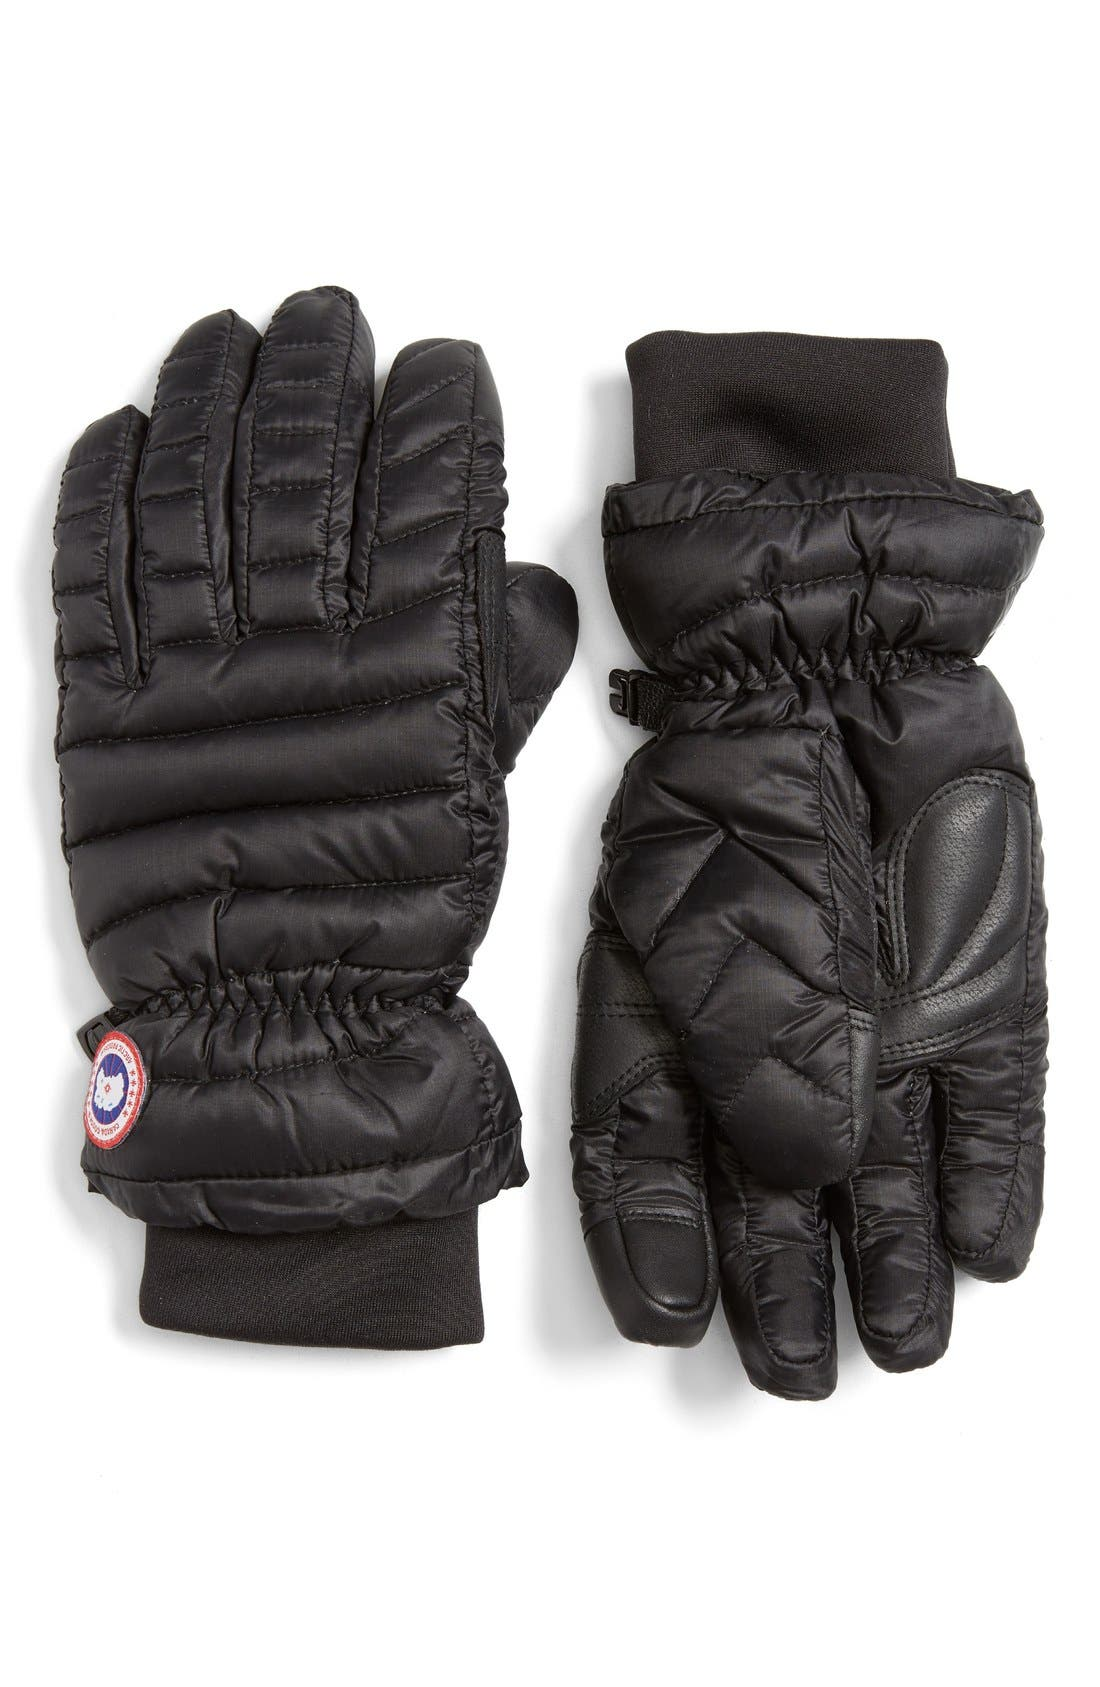 Canada Goose Lightweight Quilted Down Gloves